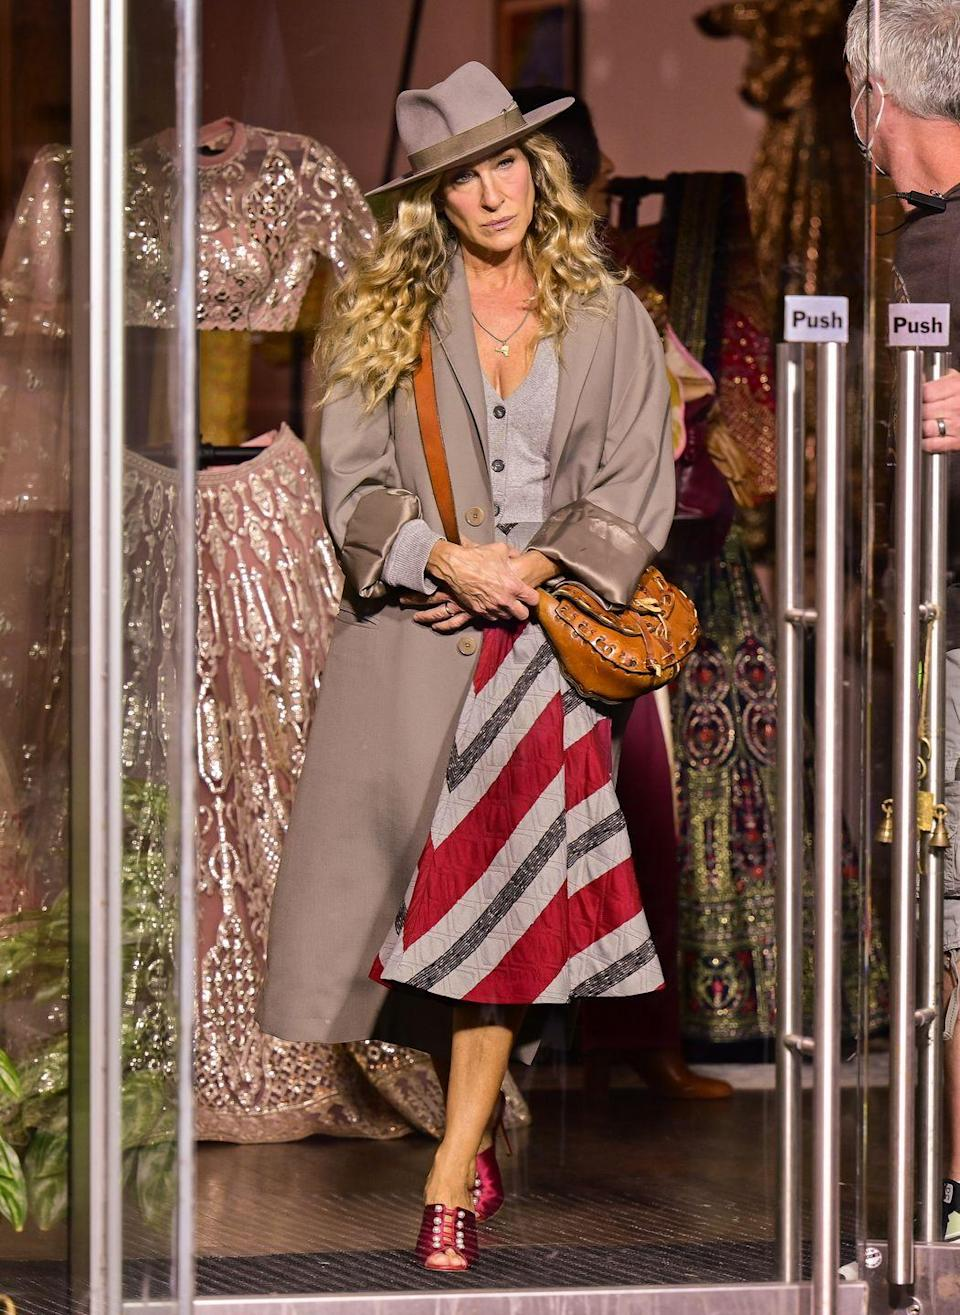 <p>The actor returned to the set of And Just Like That on September 27, days after her SATC co-star Willie Garson passed away, aged 57. The actress looked somber dressed in a grey coat, striped skirt and wide-brimmed hat in SoHo. </p>